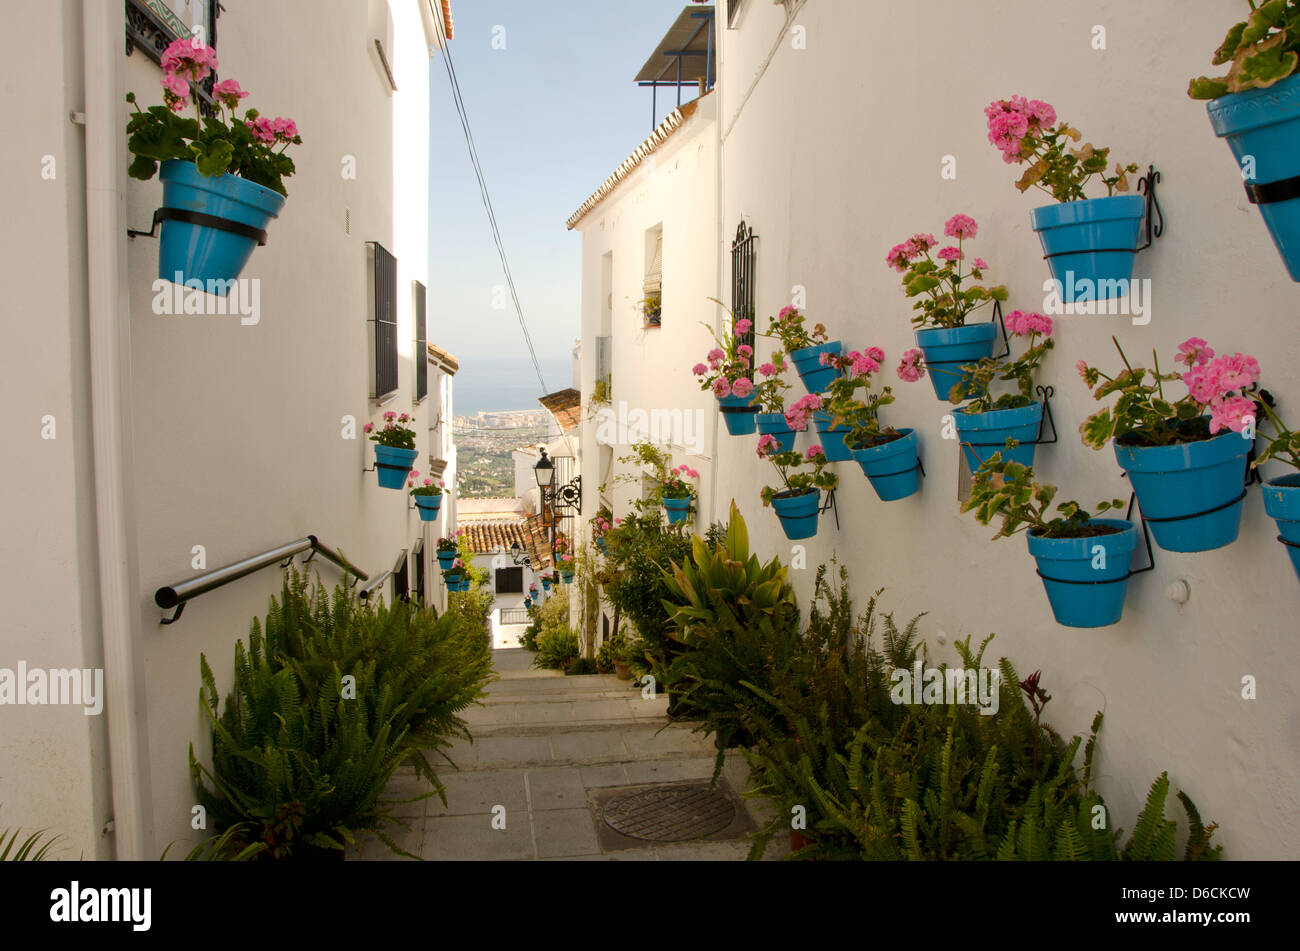 Hanging flower pots on the wall in the white village of mijas pueblo hanging flower pots on the wall in the white village of mijas pueblo in malaga costa del sol andalusia spain mightylinksfo